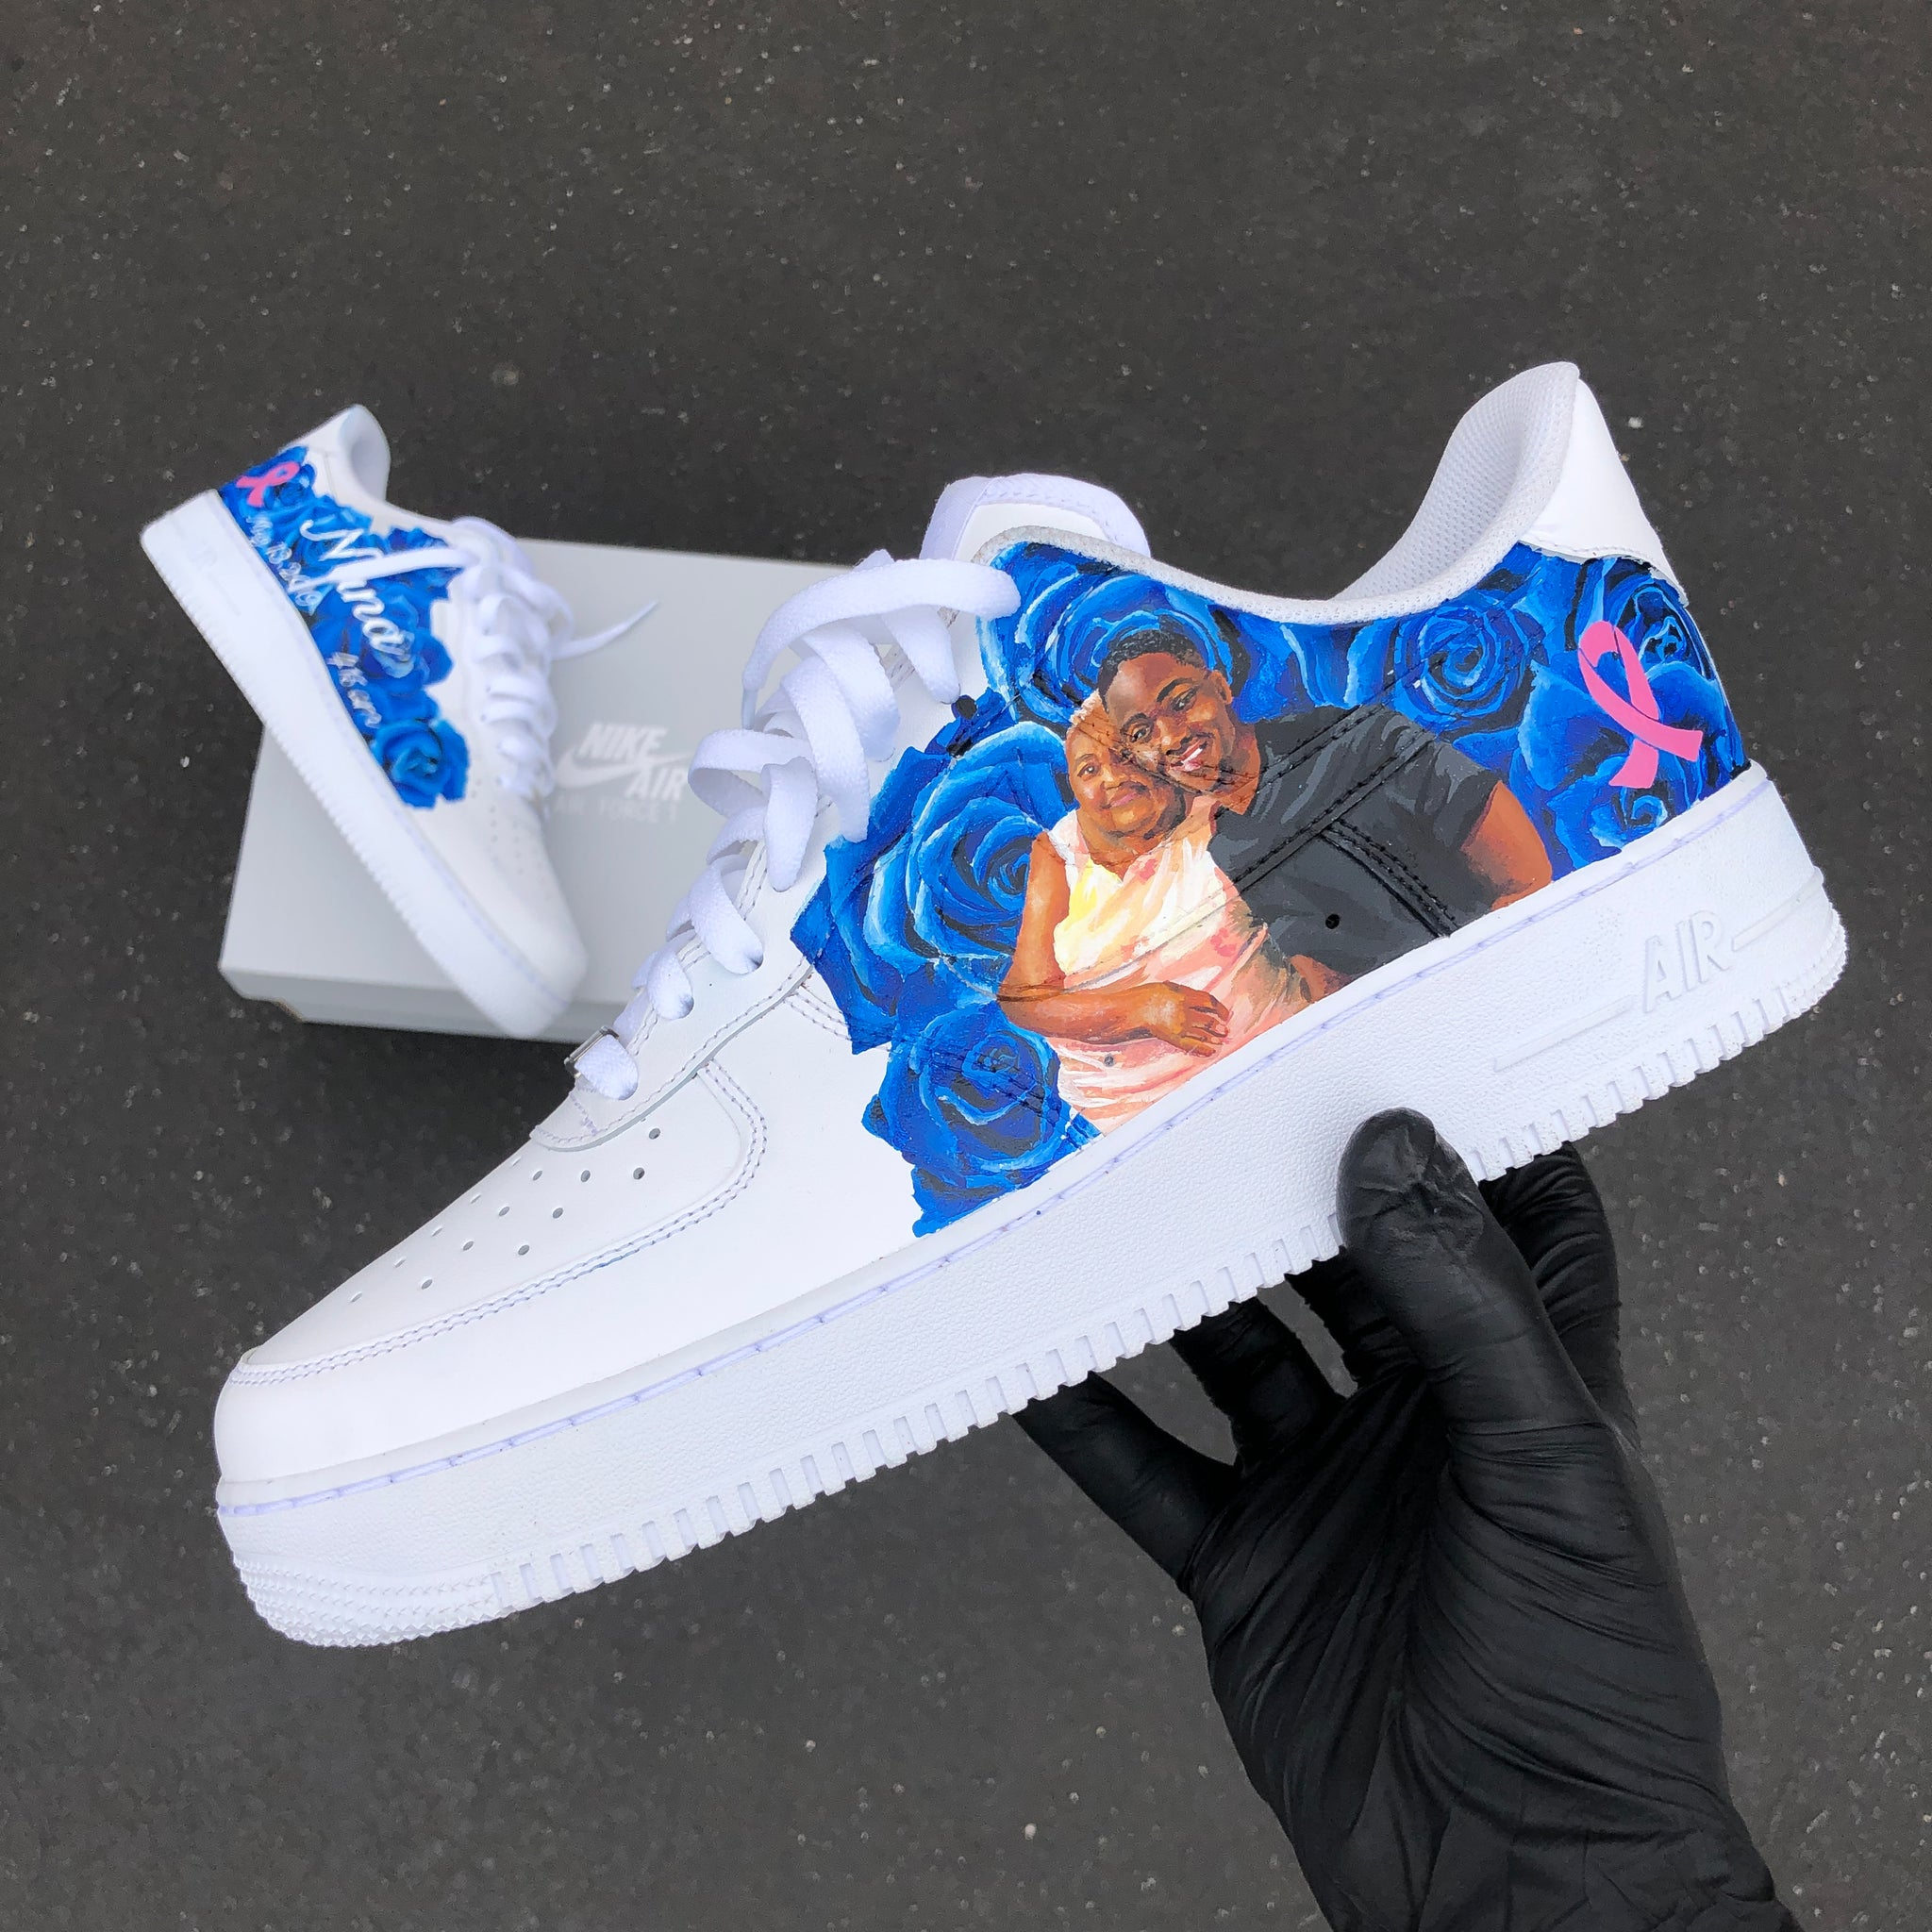 8d7dd95934048 Copy of US Men's Size 12 White Nike Air Force 1- Memorial Theme ...